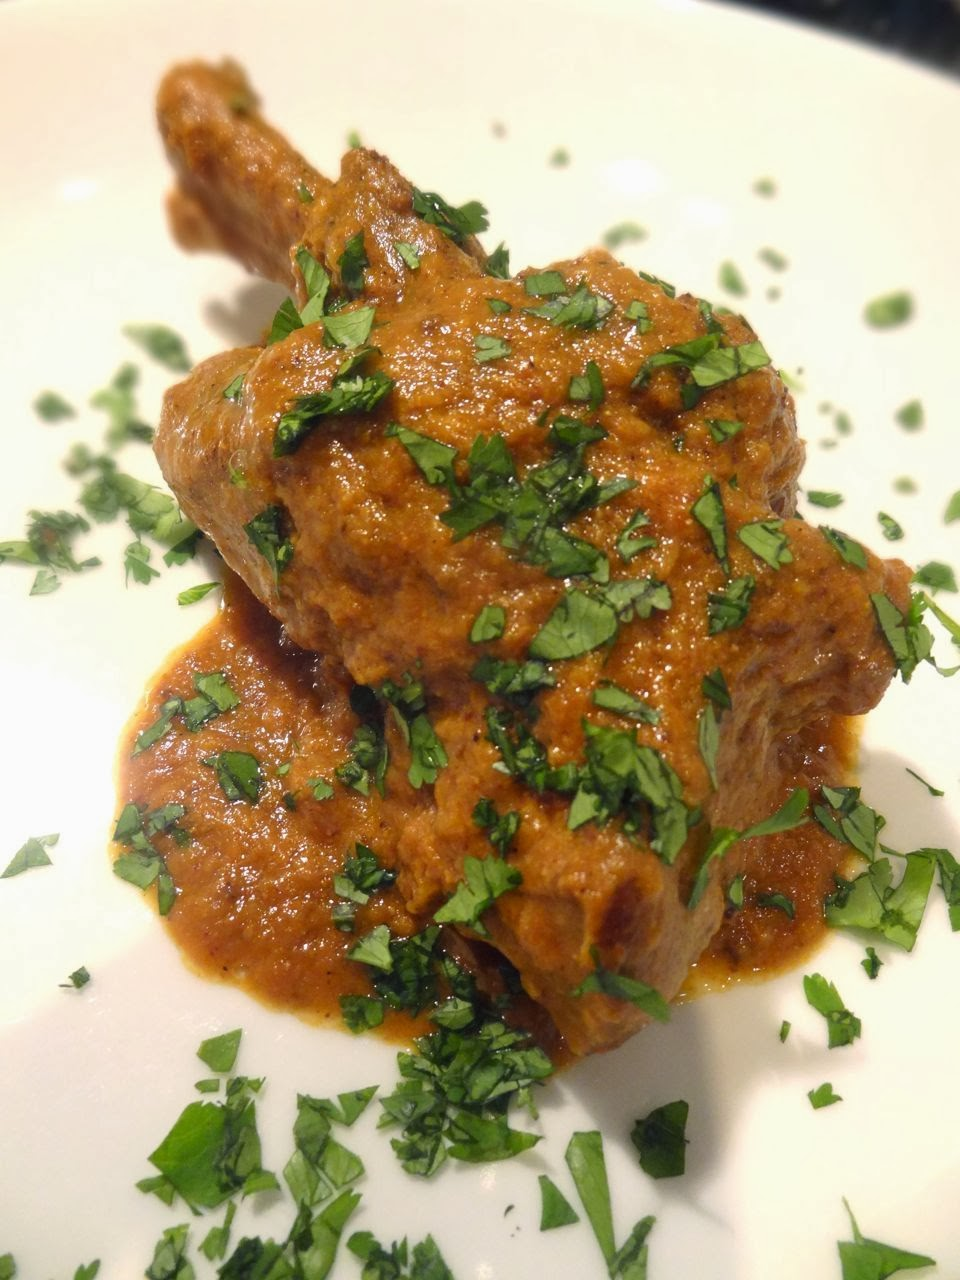 ... and garnished with a little cilantro, the lamb shanks were delicious